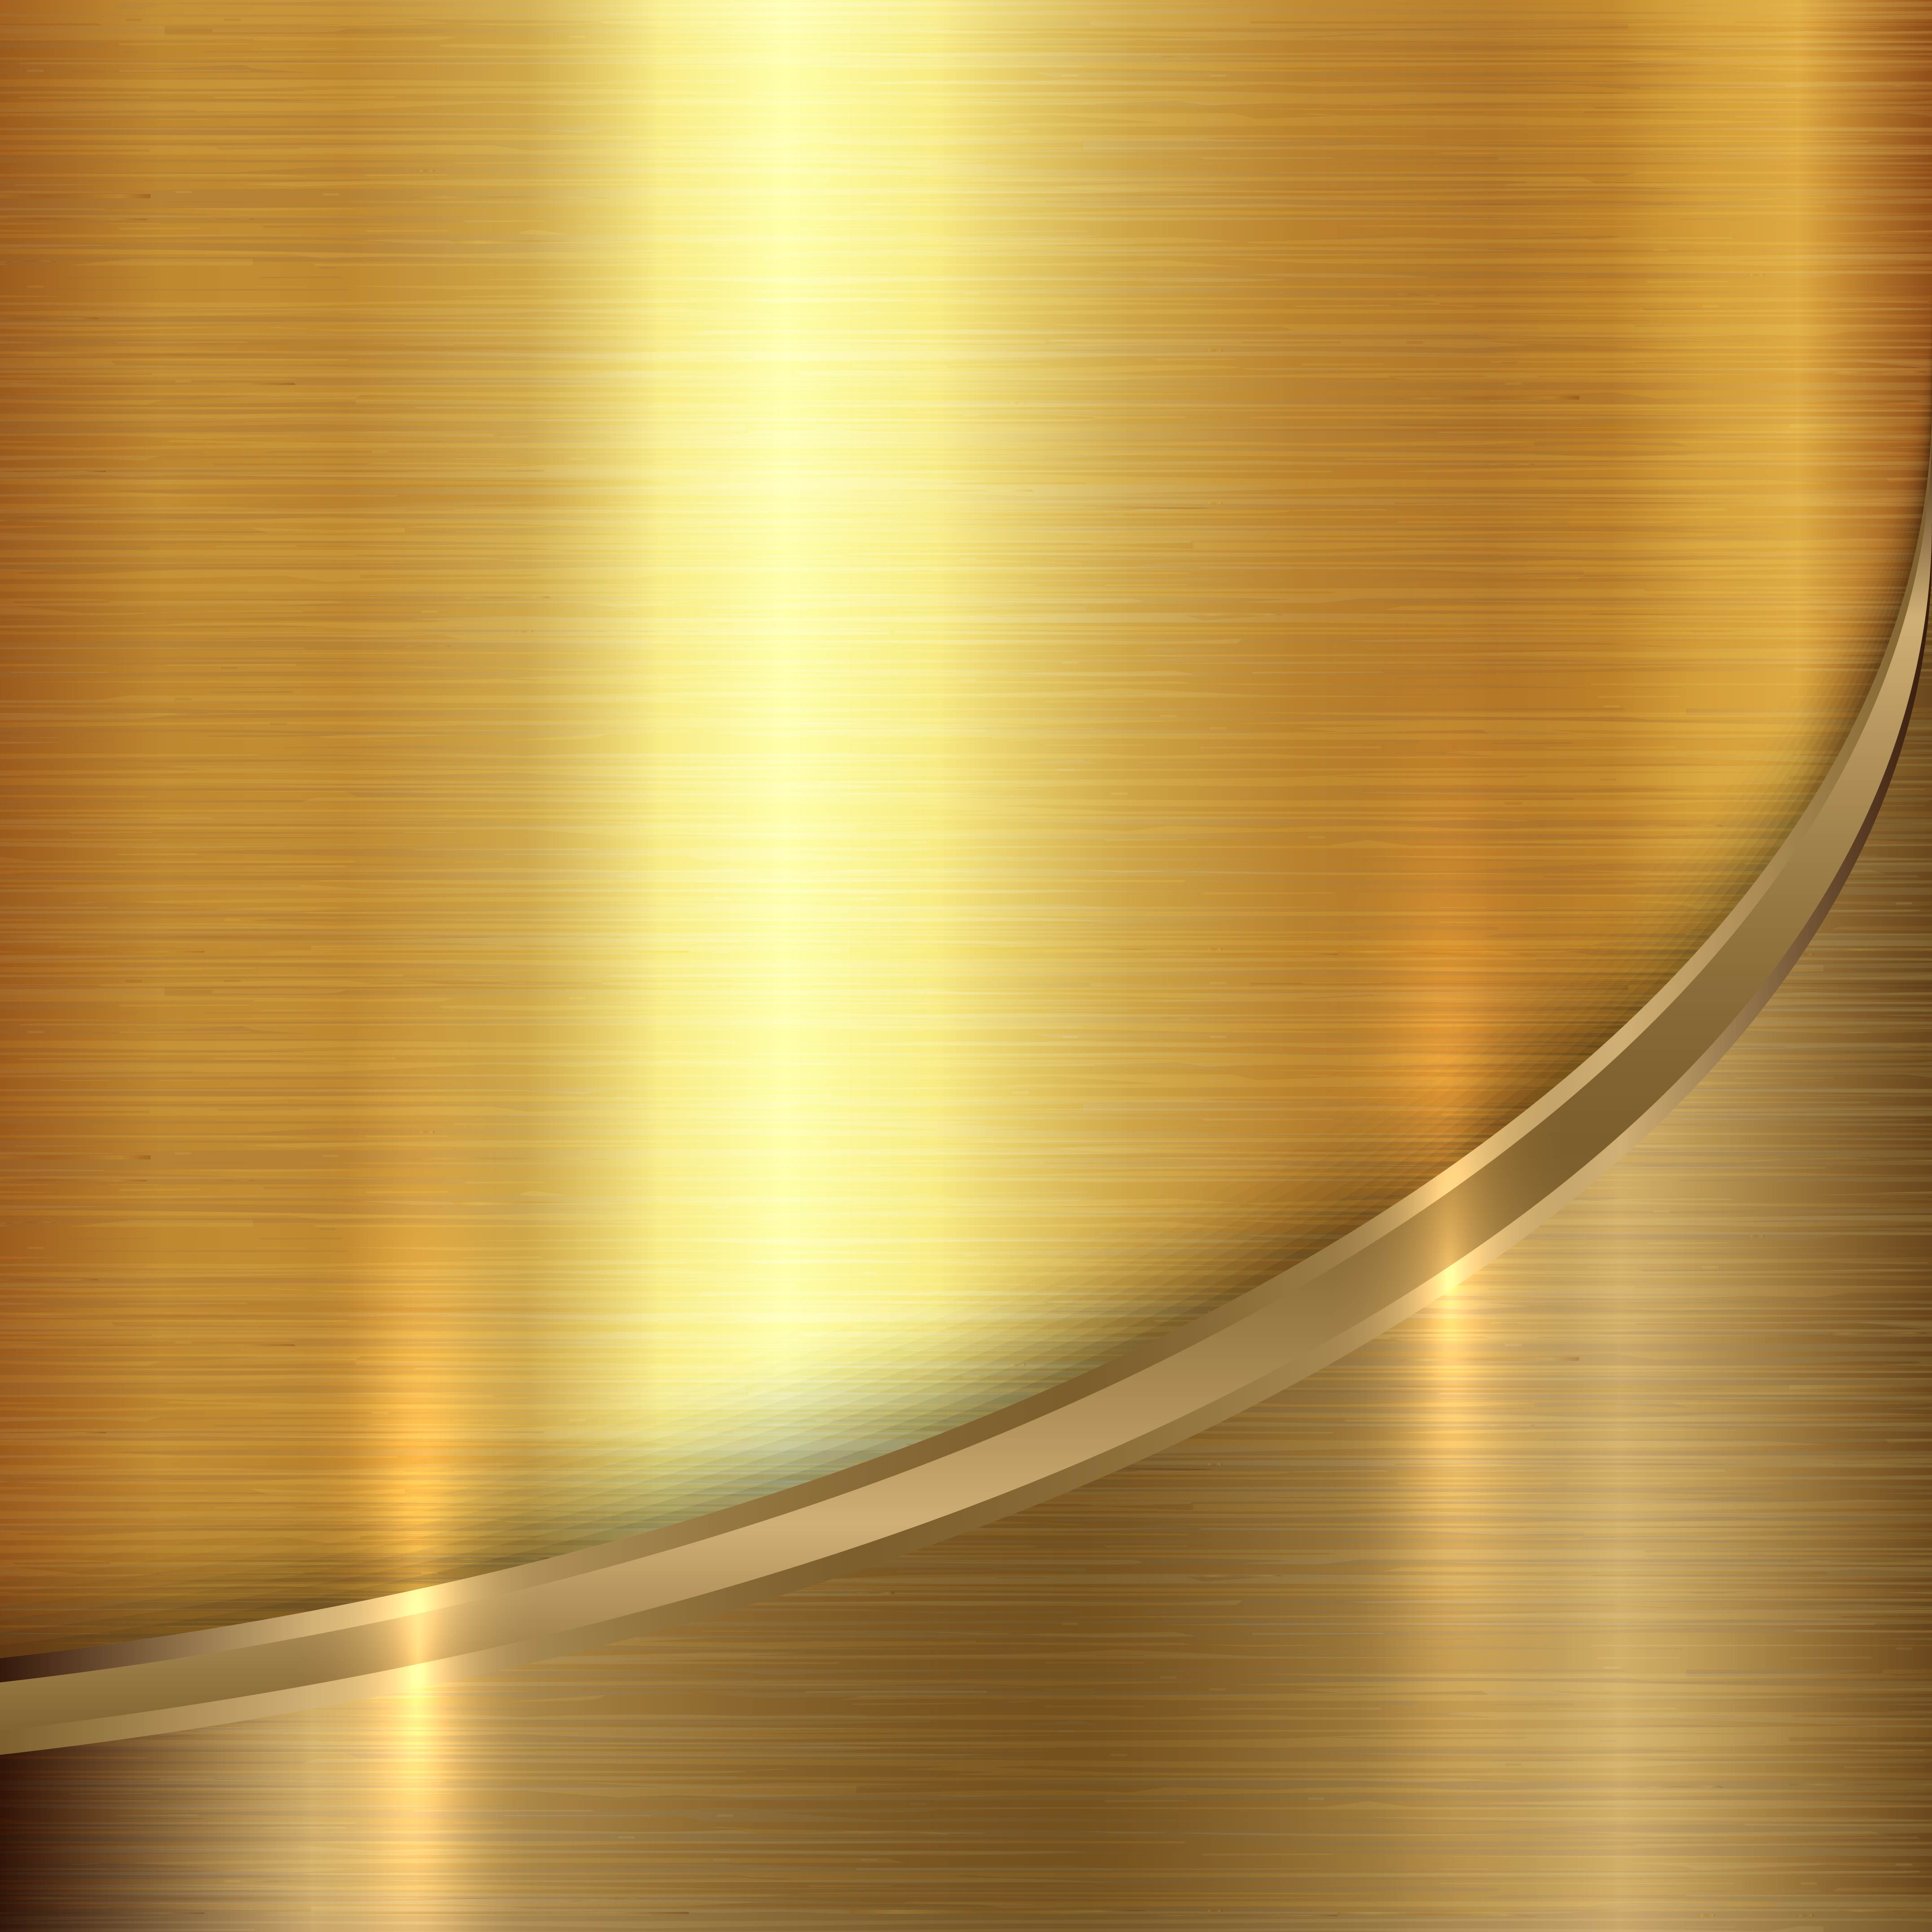 Gold Metal Background Texture Vector Material Gold